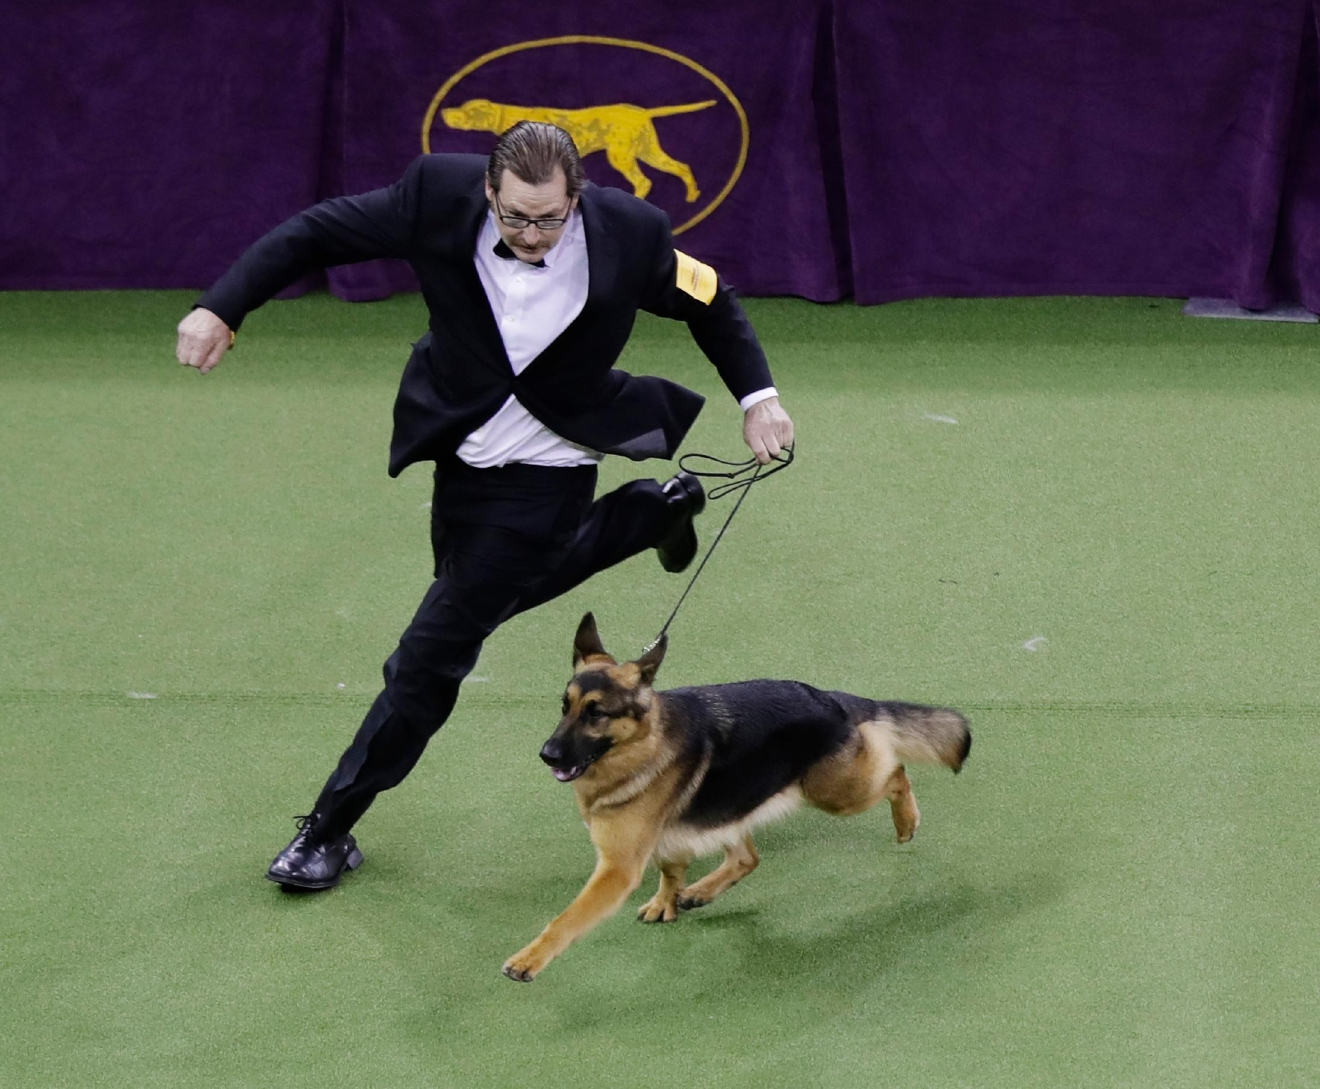 A handler guides Rumor, a German shepherd who later won Best in Show, at the 141st Westminster Kennel Club Dog Show on Tuesday, Feb. 14, 2017, in New York. (AP Photo/Frank Franklin II)